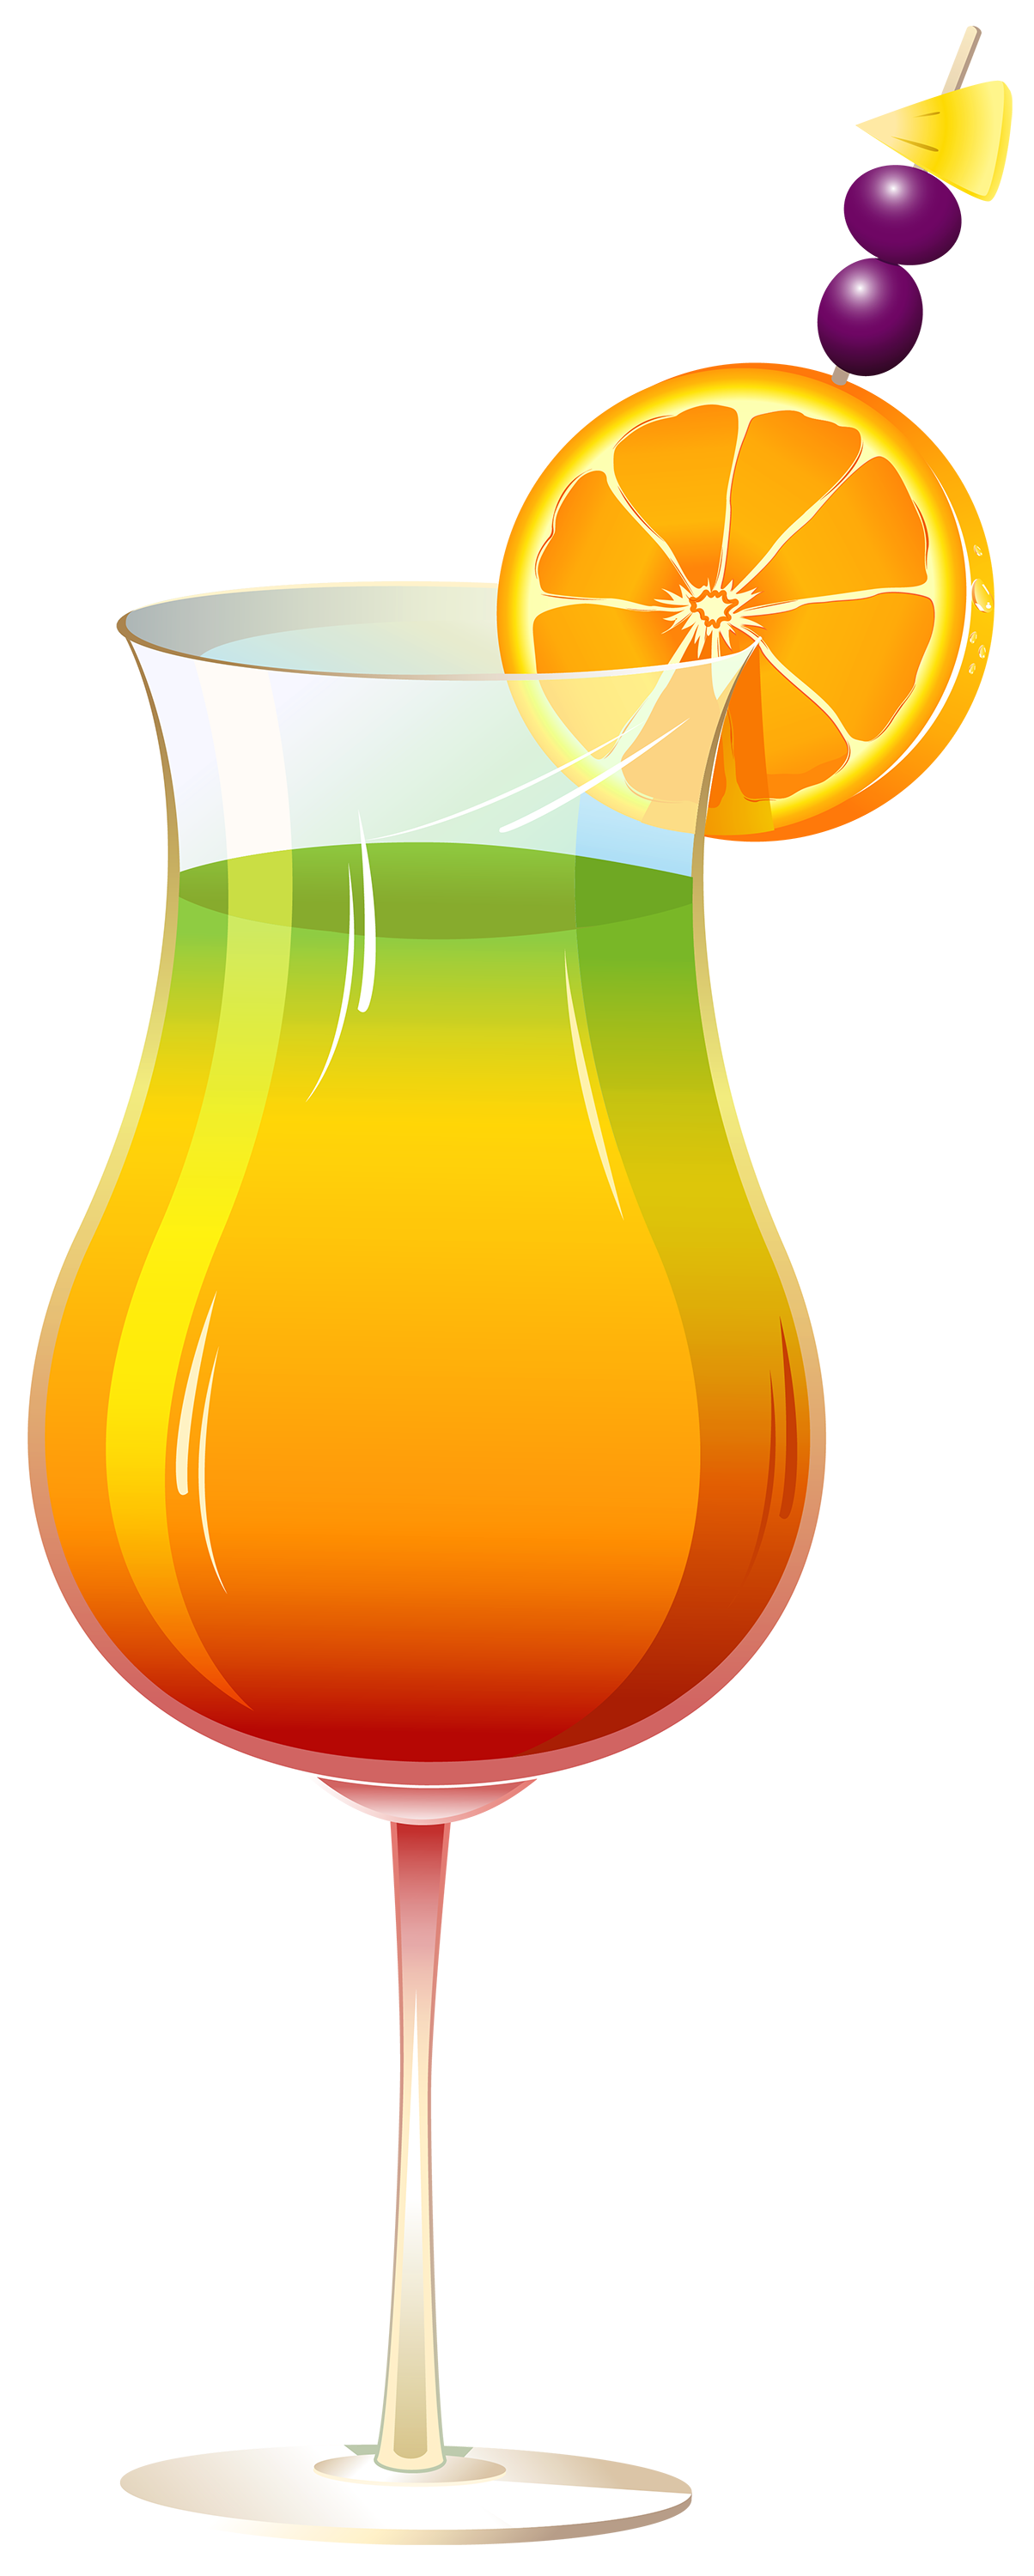 Exotic cocktail png best. Juice clipart beach drink